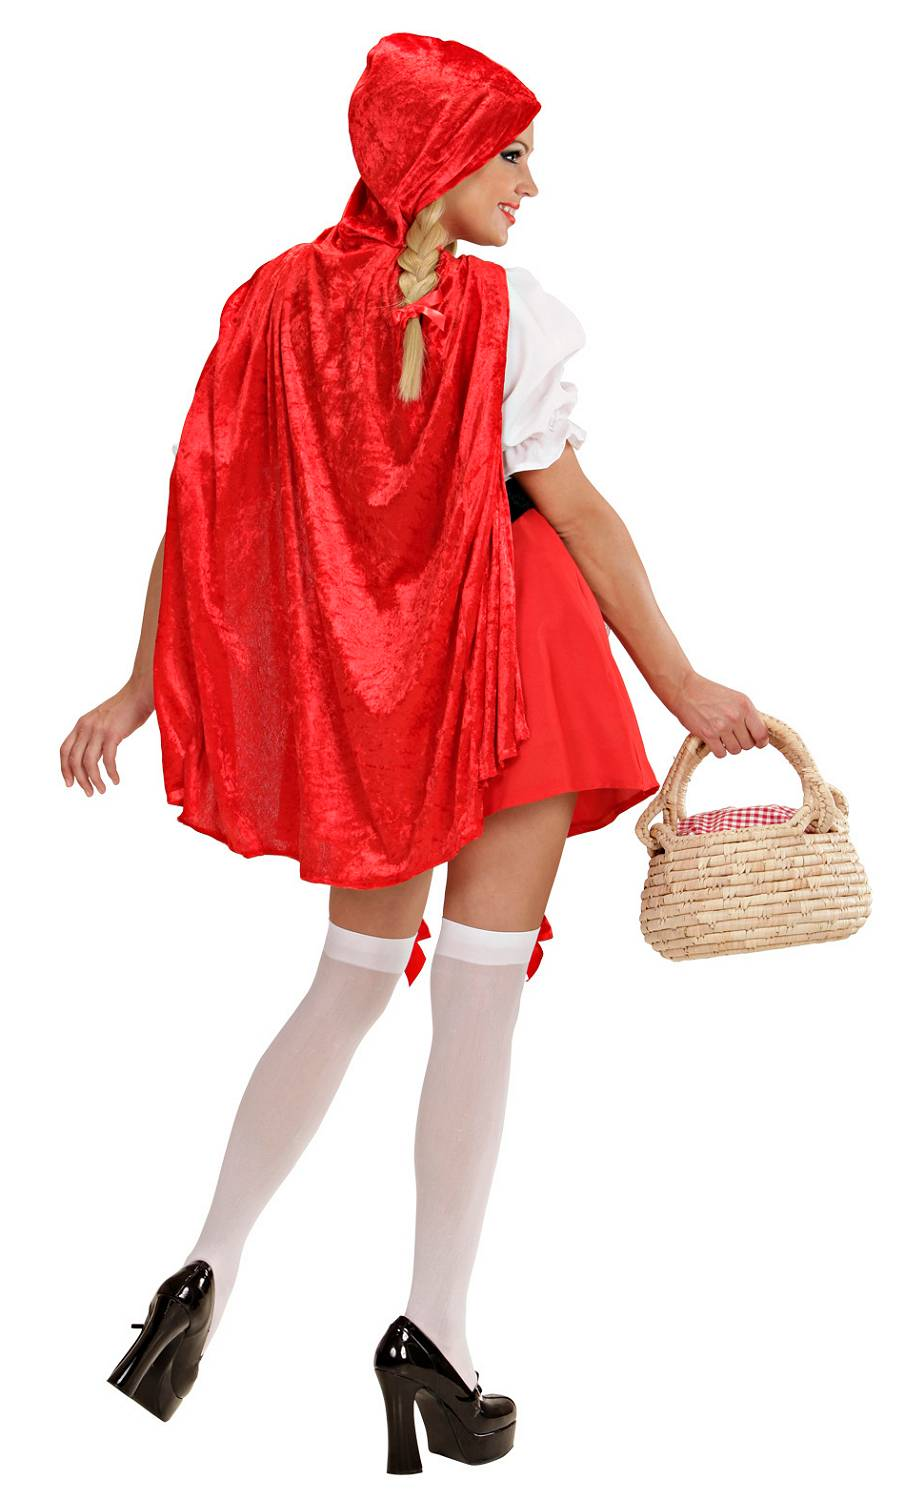 Costume-Chaperon-rouge-Femme-2